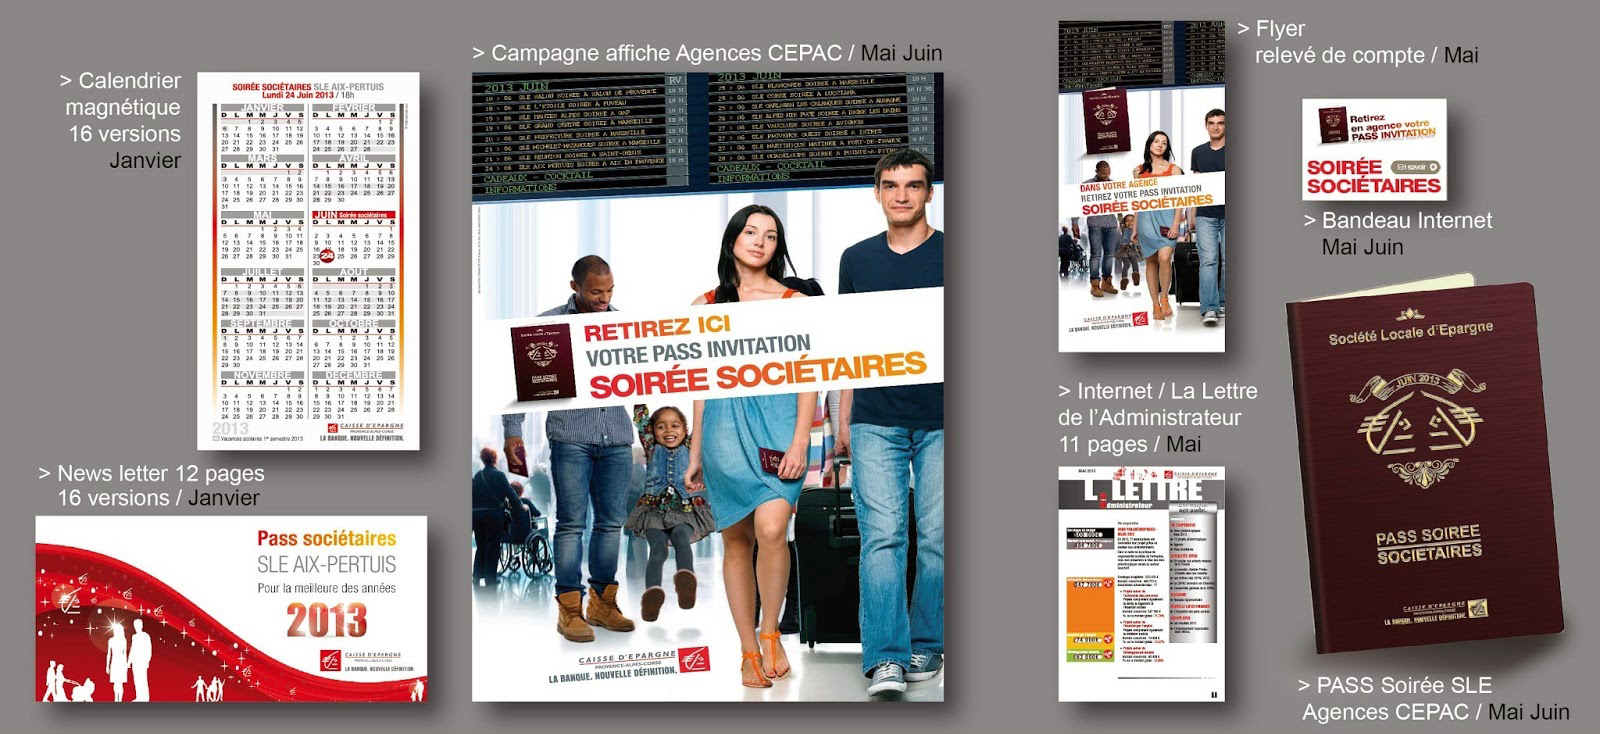 CEPAC-Photos-Juin 2013